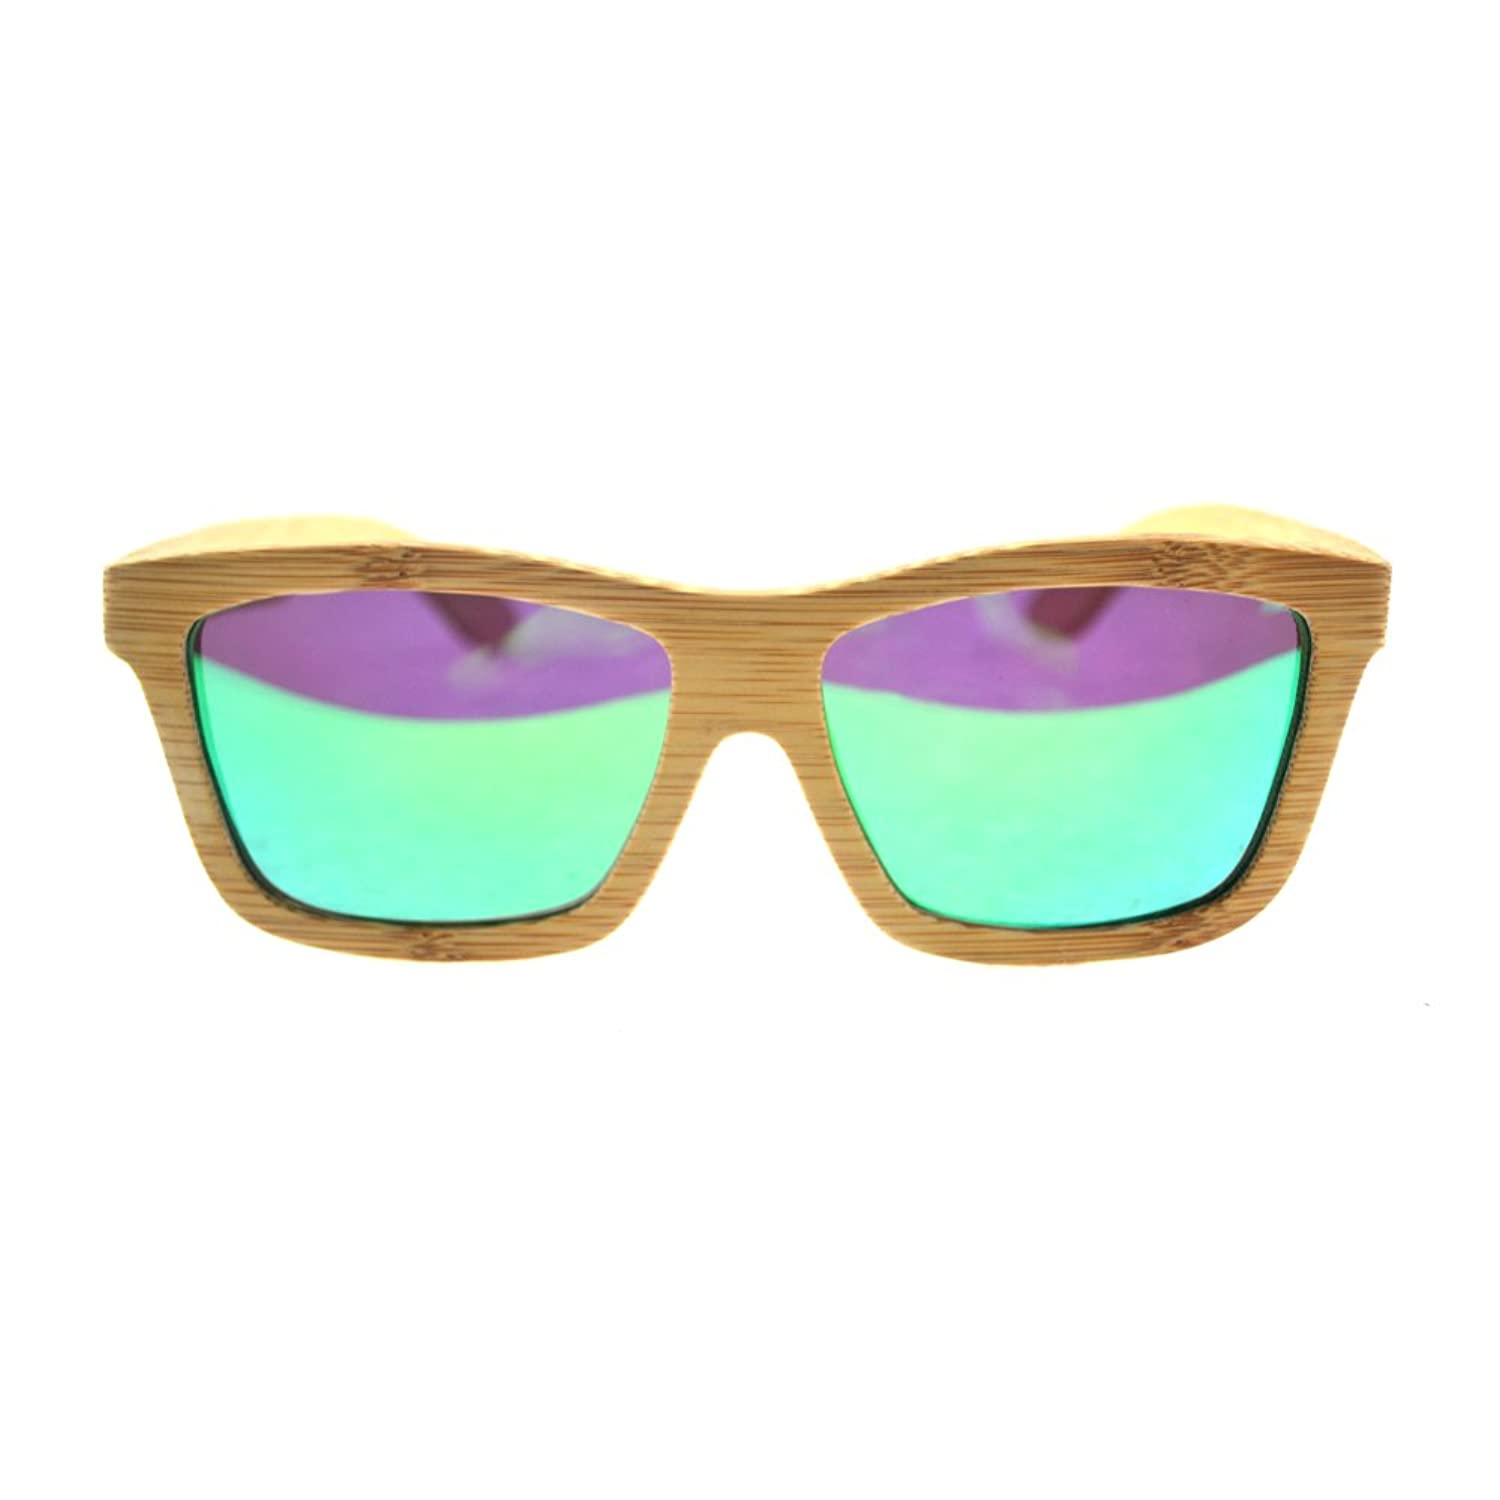 Women's Men's Fashion Wood Wooden Bamboo Polarized Sunglasses Aviator